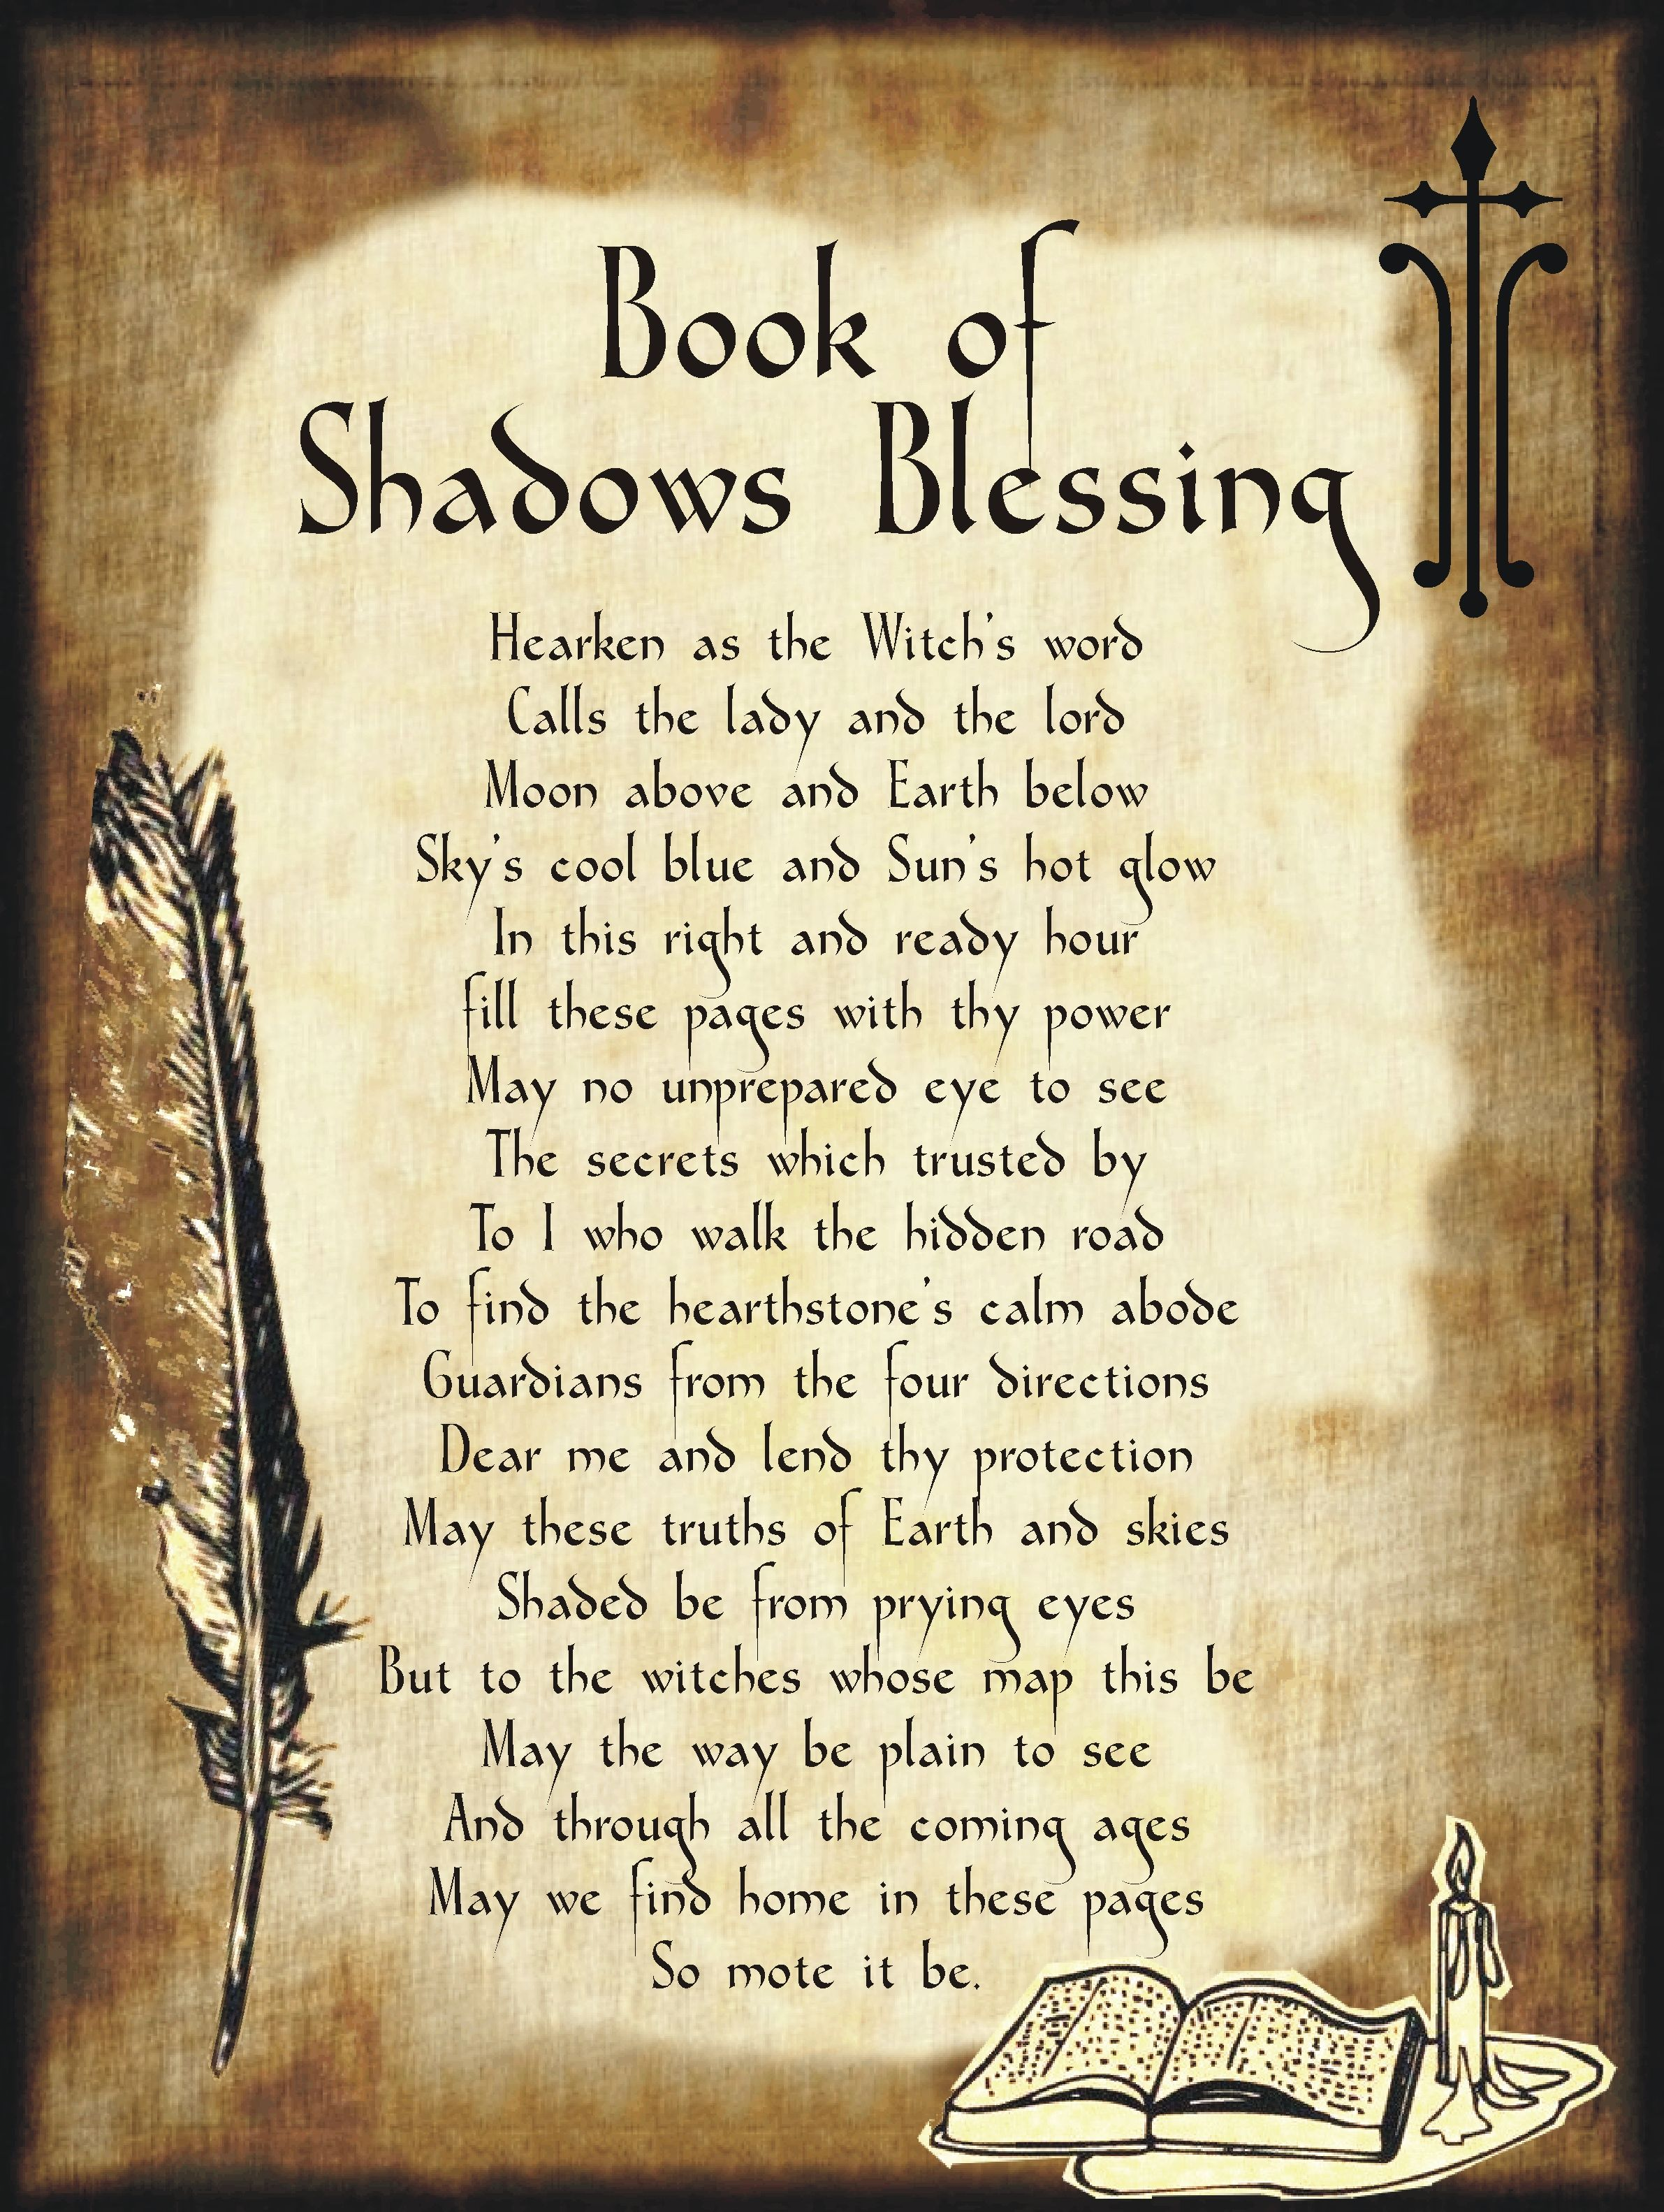 Book Of Shadows Blessing For Homemade Halloween Spell Book Halloween Spell Book Book Of Shadows Wiccan Spell Book